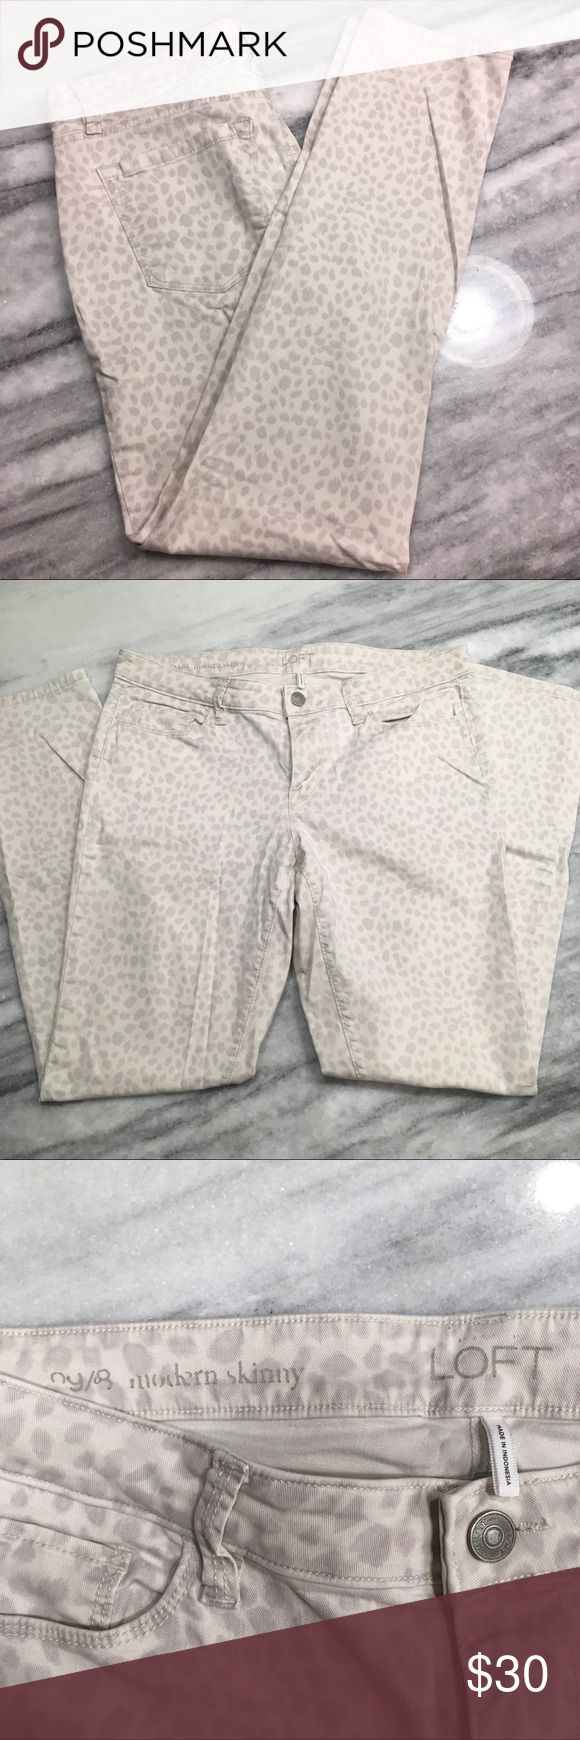 LOFT Cream and Tan Leopard Animal Print Jeans Gorgeous and unique pair of denim jeans pants from LOFT. Gently used condition. Modern Skinny style in size 29/8.  Please feel free to ask questions and bundle items for better discounts. I always consider respectful offers! LOFT Jeans Skinny